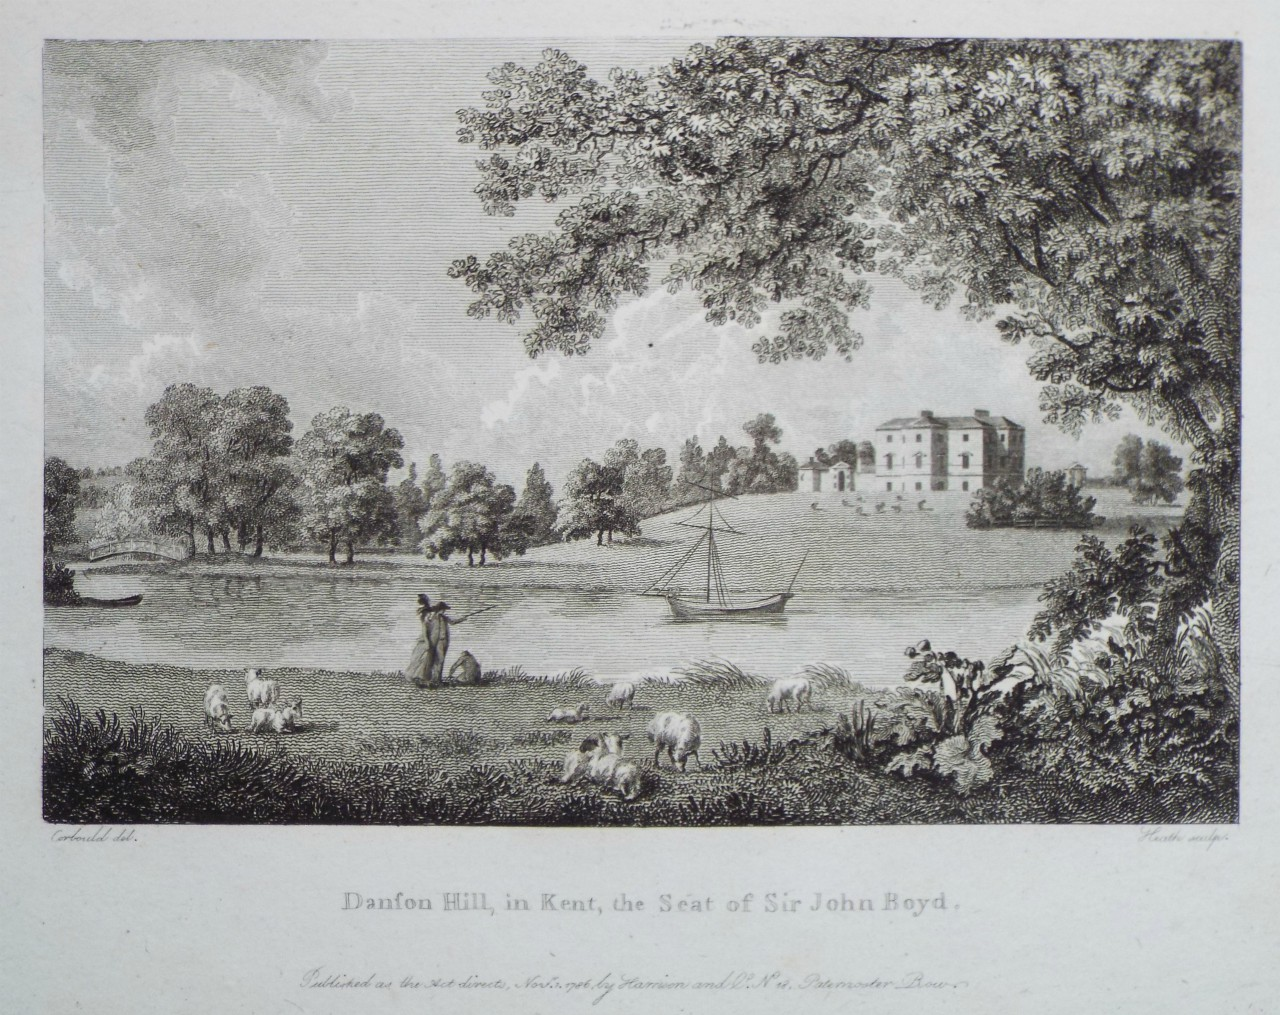 Print - Danson Hill, in Kent, the Seat of Sir John Boyd. -